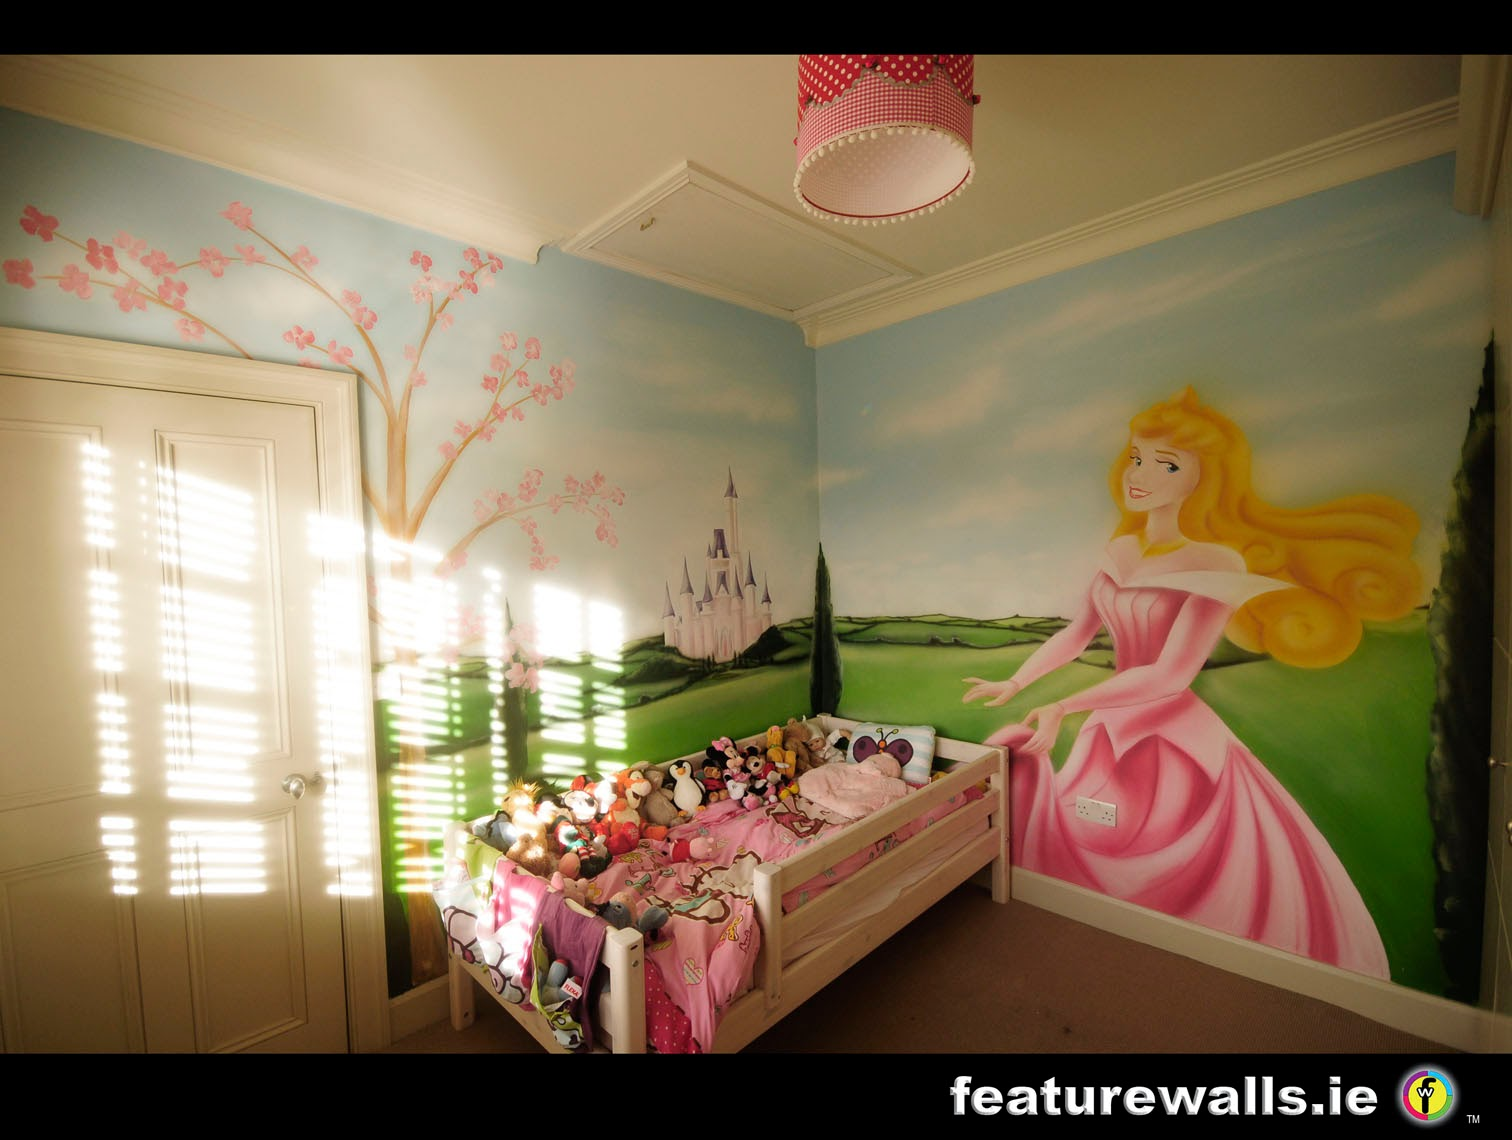 KIDS BEDROOM MURAL SPACE WALL HAND PAINTED MURAL BY FEATURE WALLS IRISH  MURAL ARTISTS